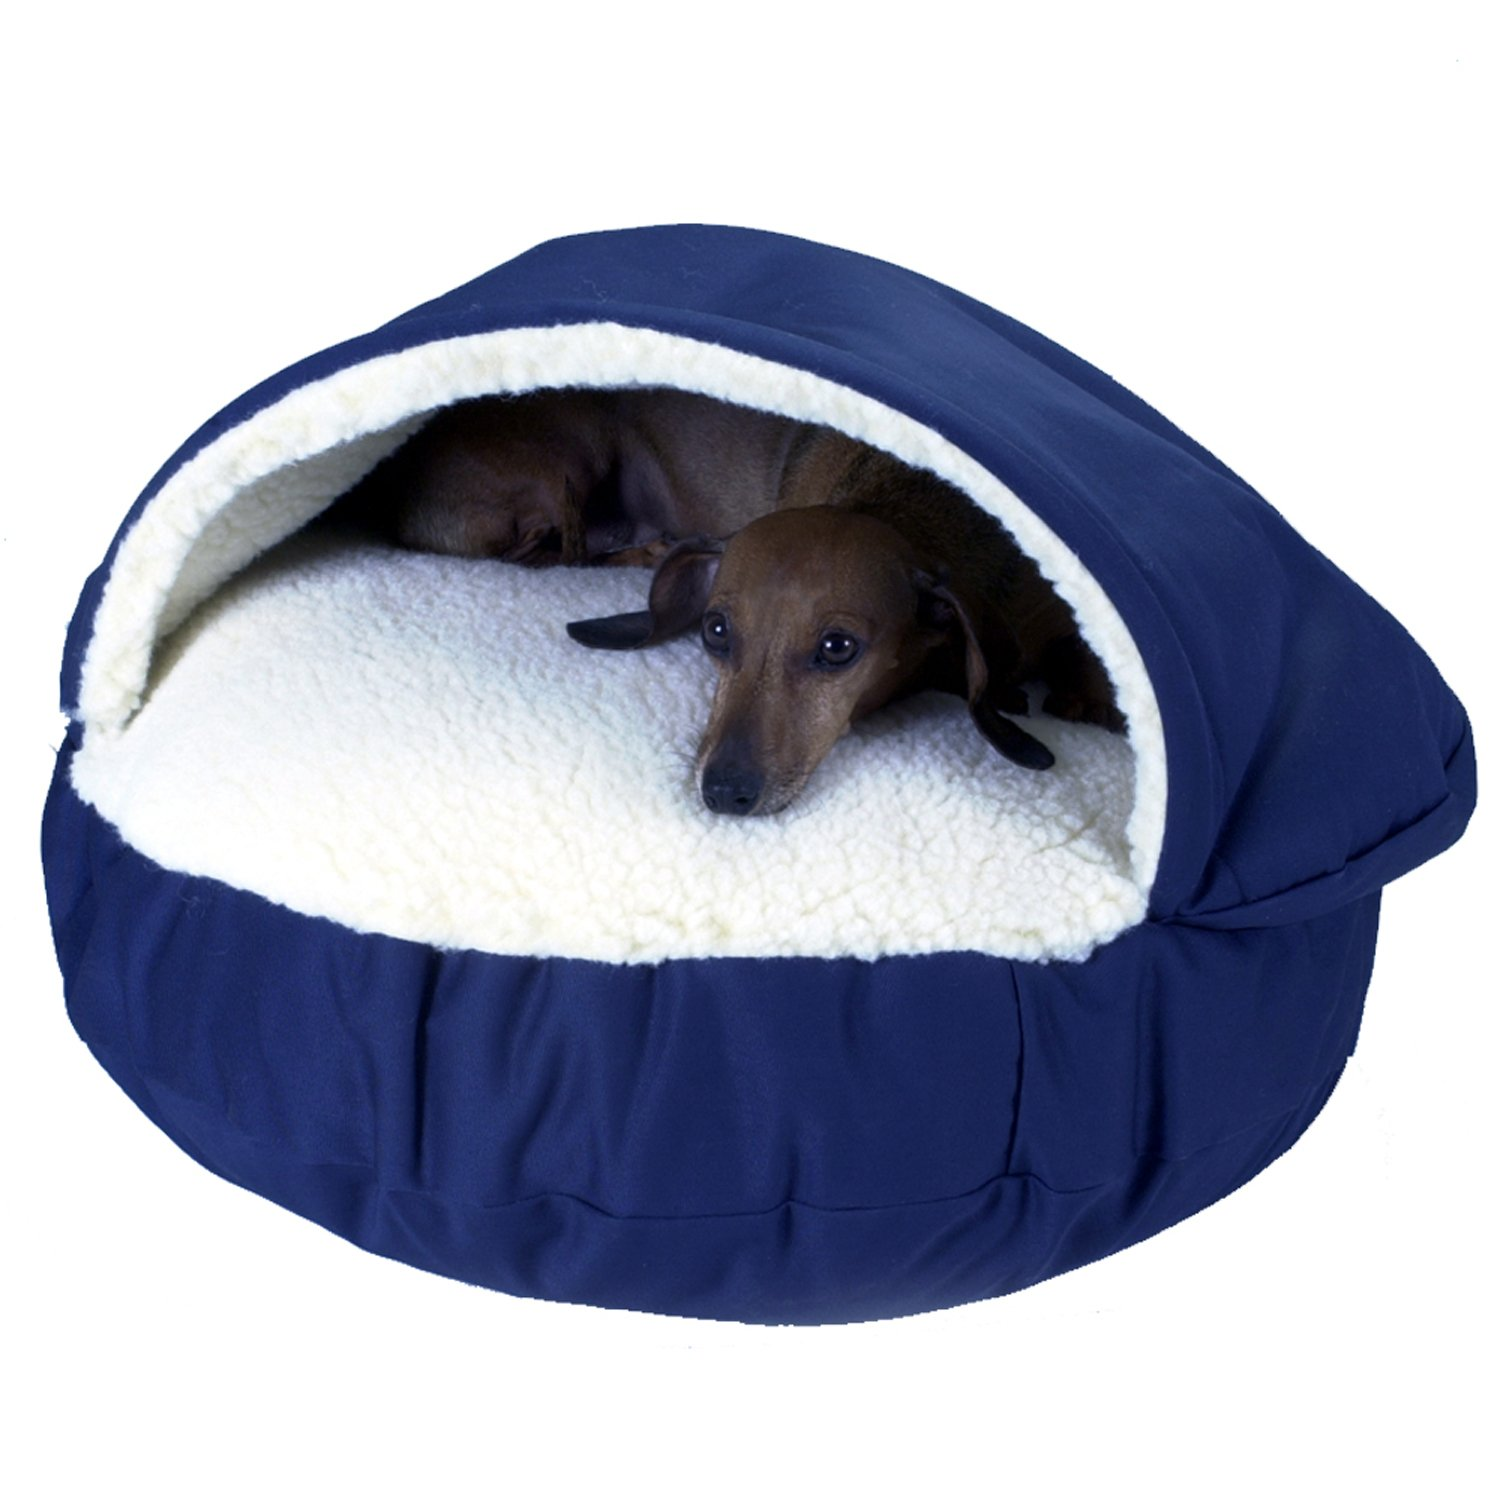 Snoozer Orthopedic Cozy Cave Pet Bed in Navy & Cream